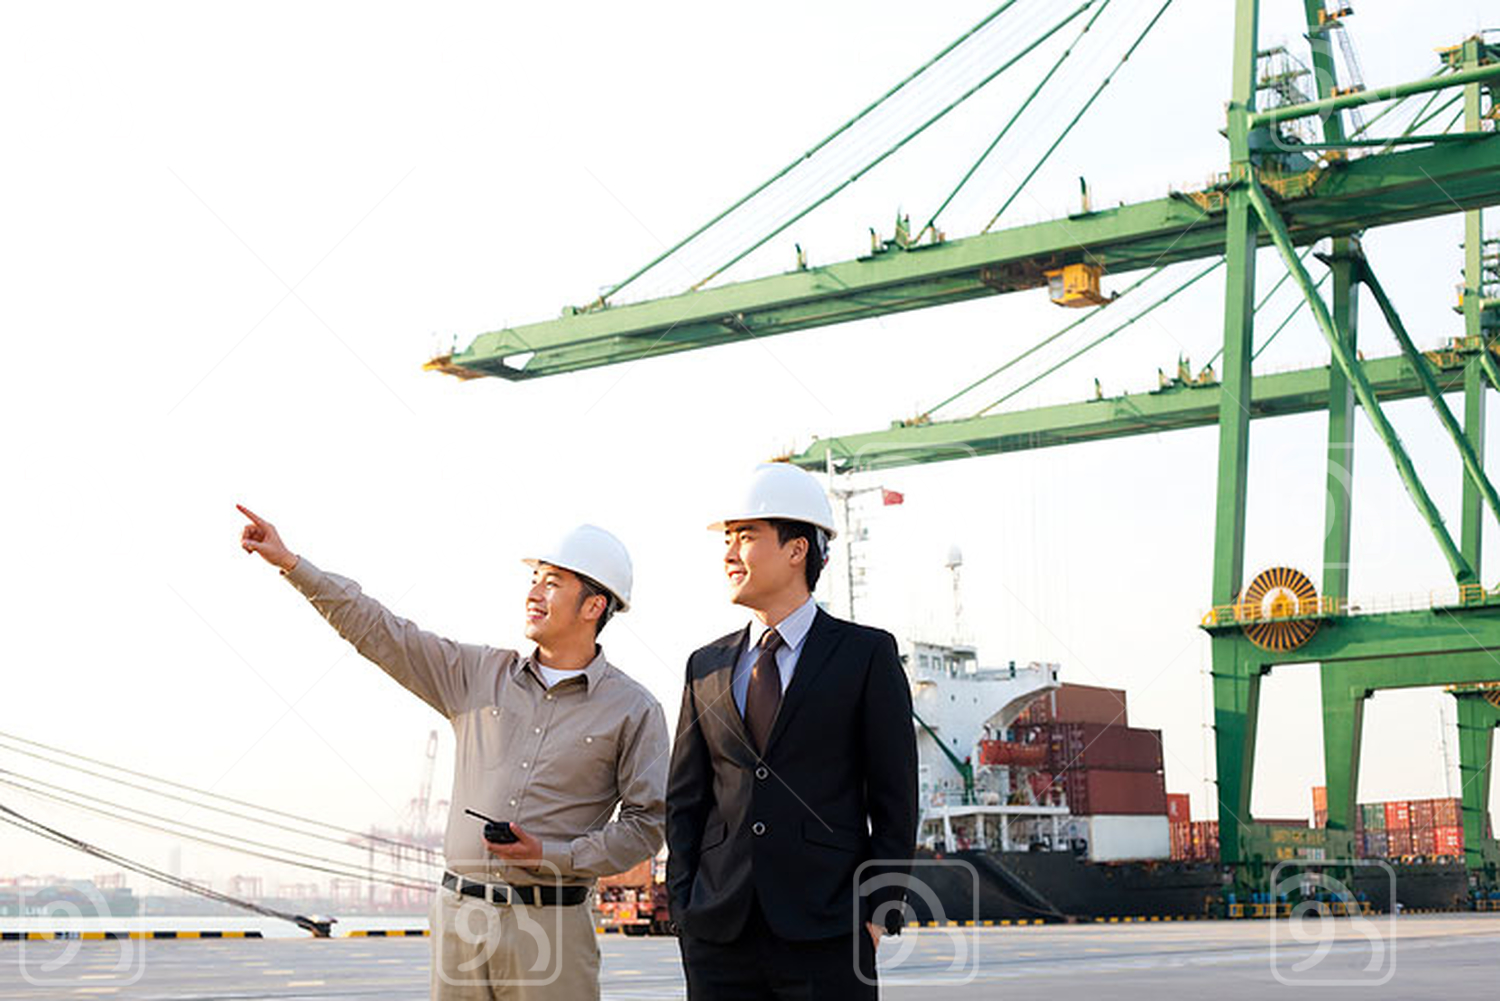 Chinese shipping industry worker showing a businessman around the port